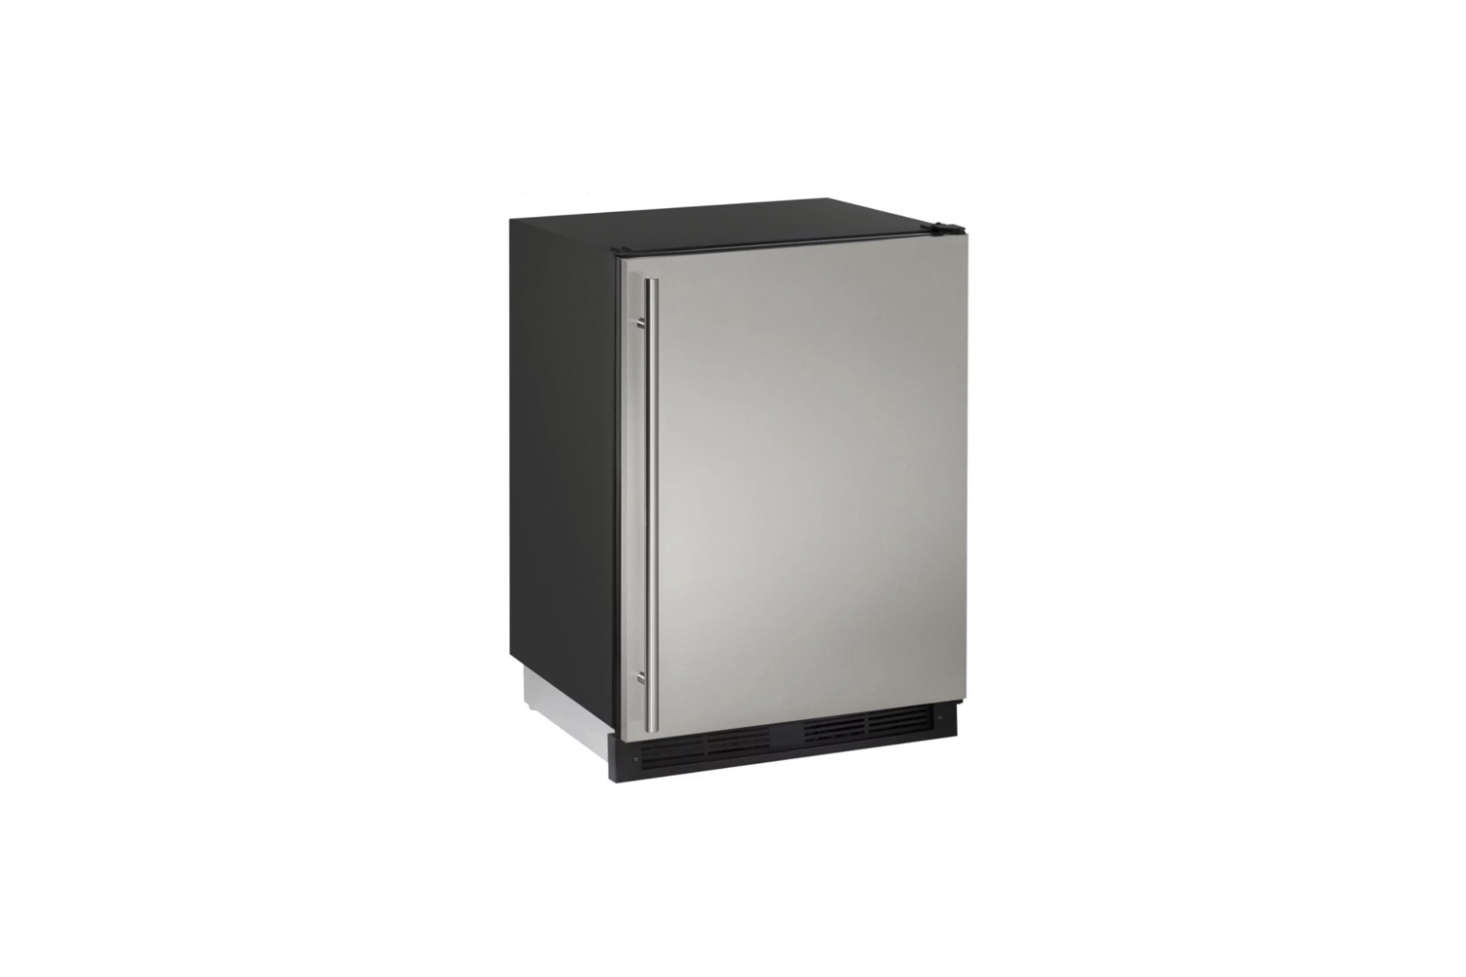 For a basic industrial mini fridge, the U-Line Combo 00 Series Built-In Refrigerator/Freezer Combo is $src=